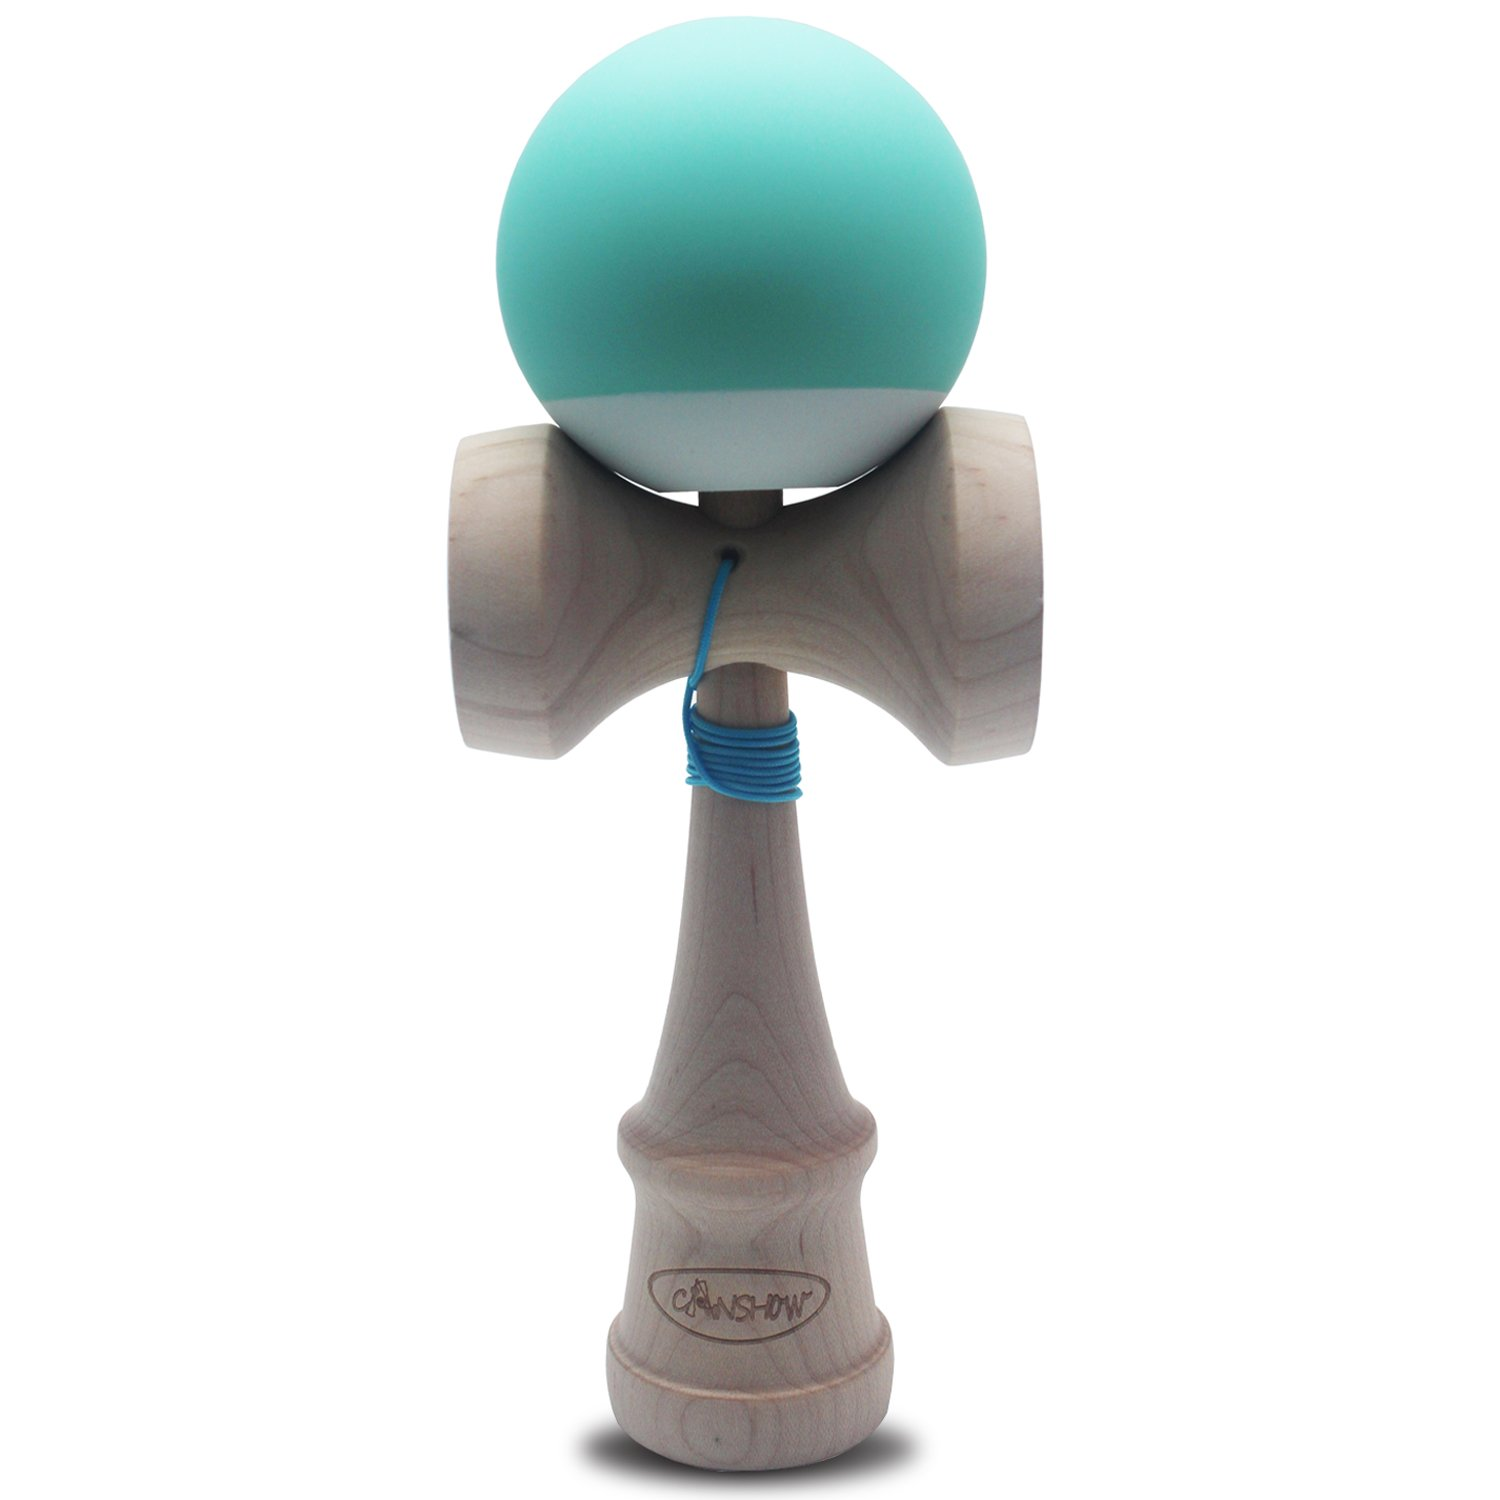 CANSHOW Kendama Maple Wood Toy - Pro Model Rubber Paint Ball with Extra String - Strengthens Hand and Eye Coordination